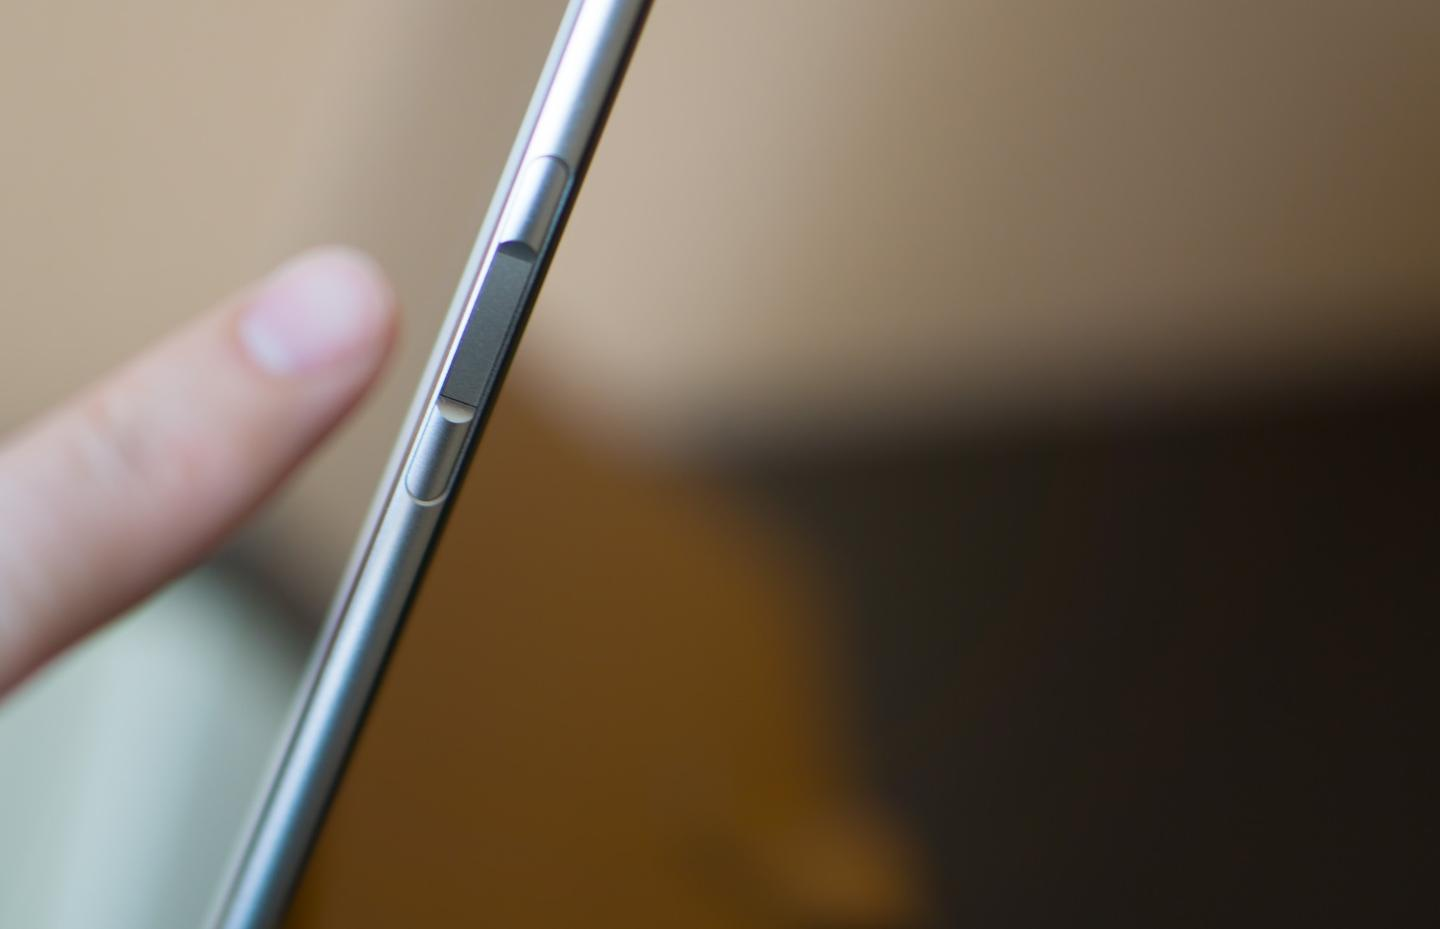 The MateBook's fingerprint sensor (the flat part between the two volume buttons) works extremely quickly